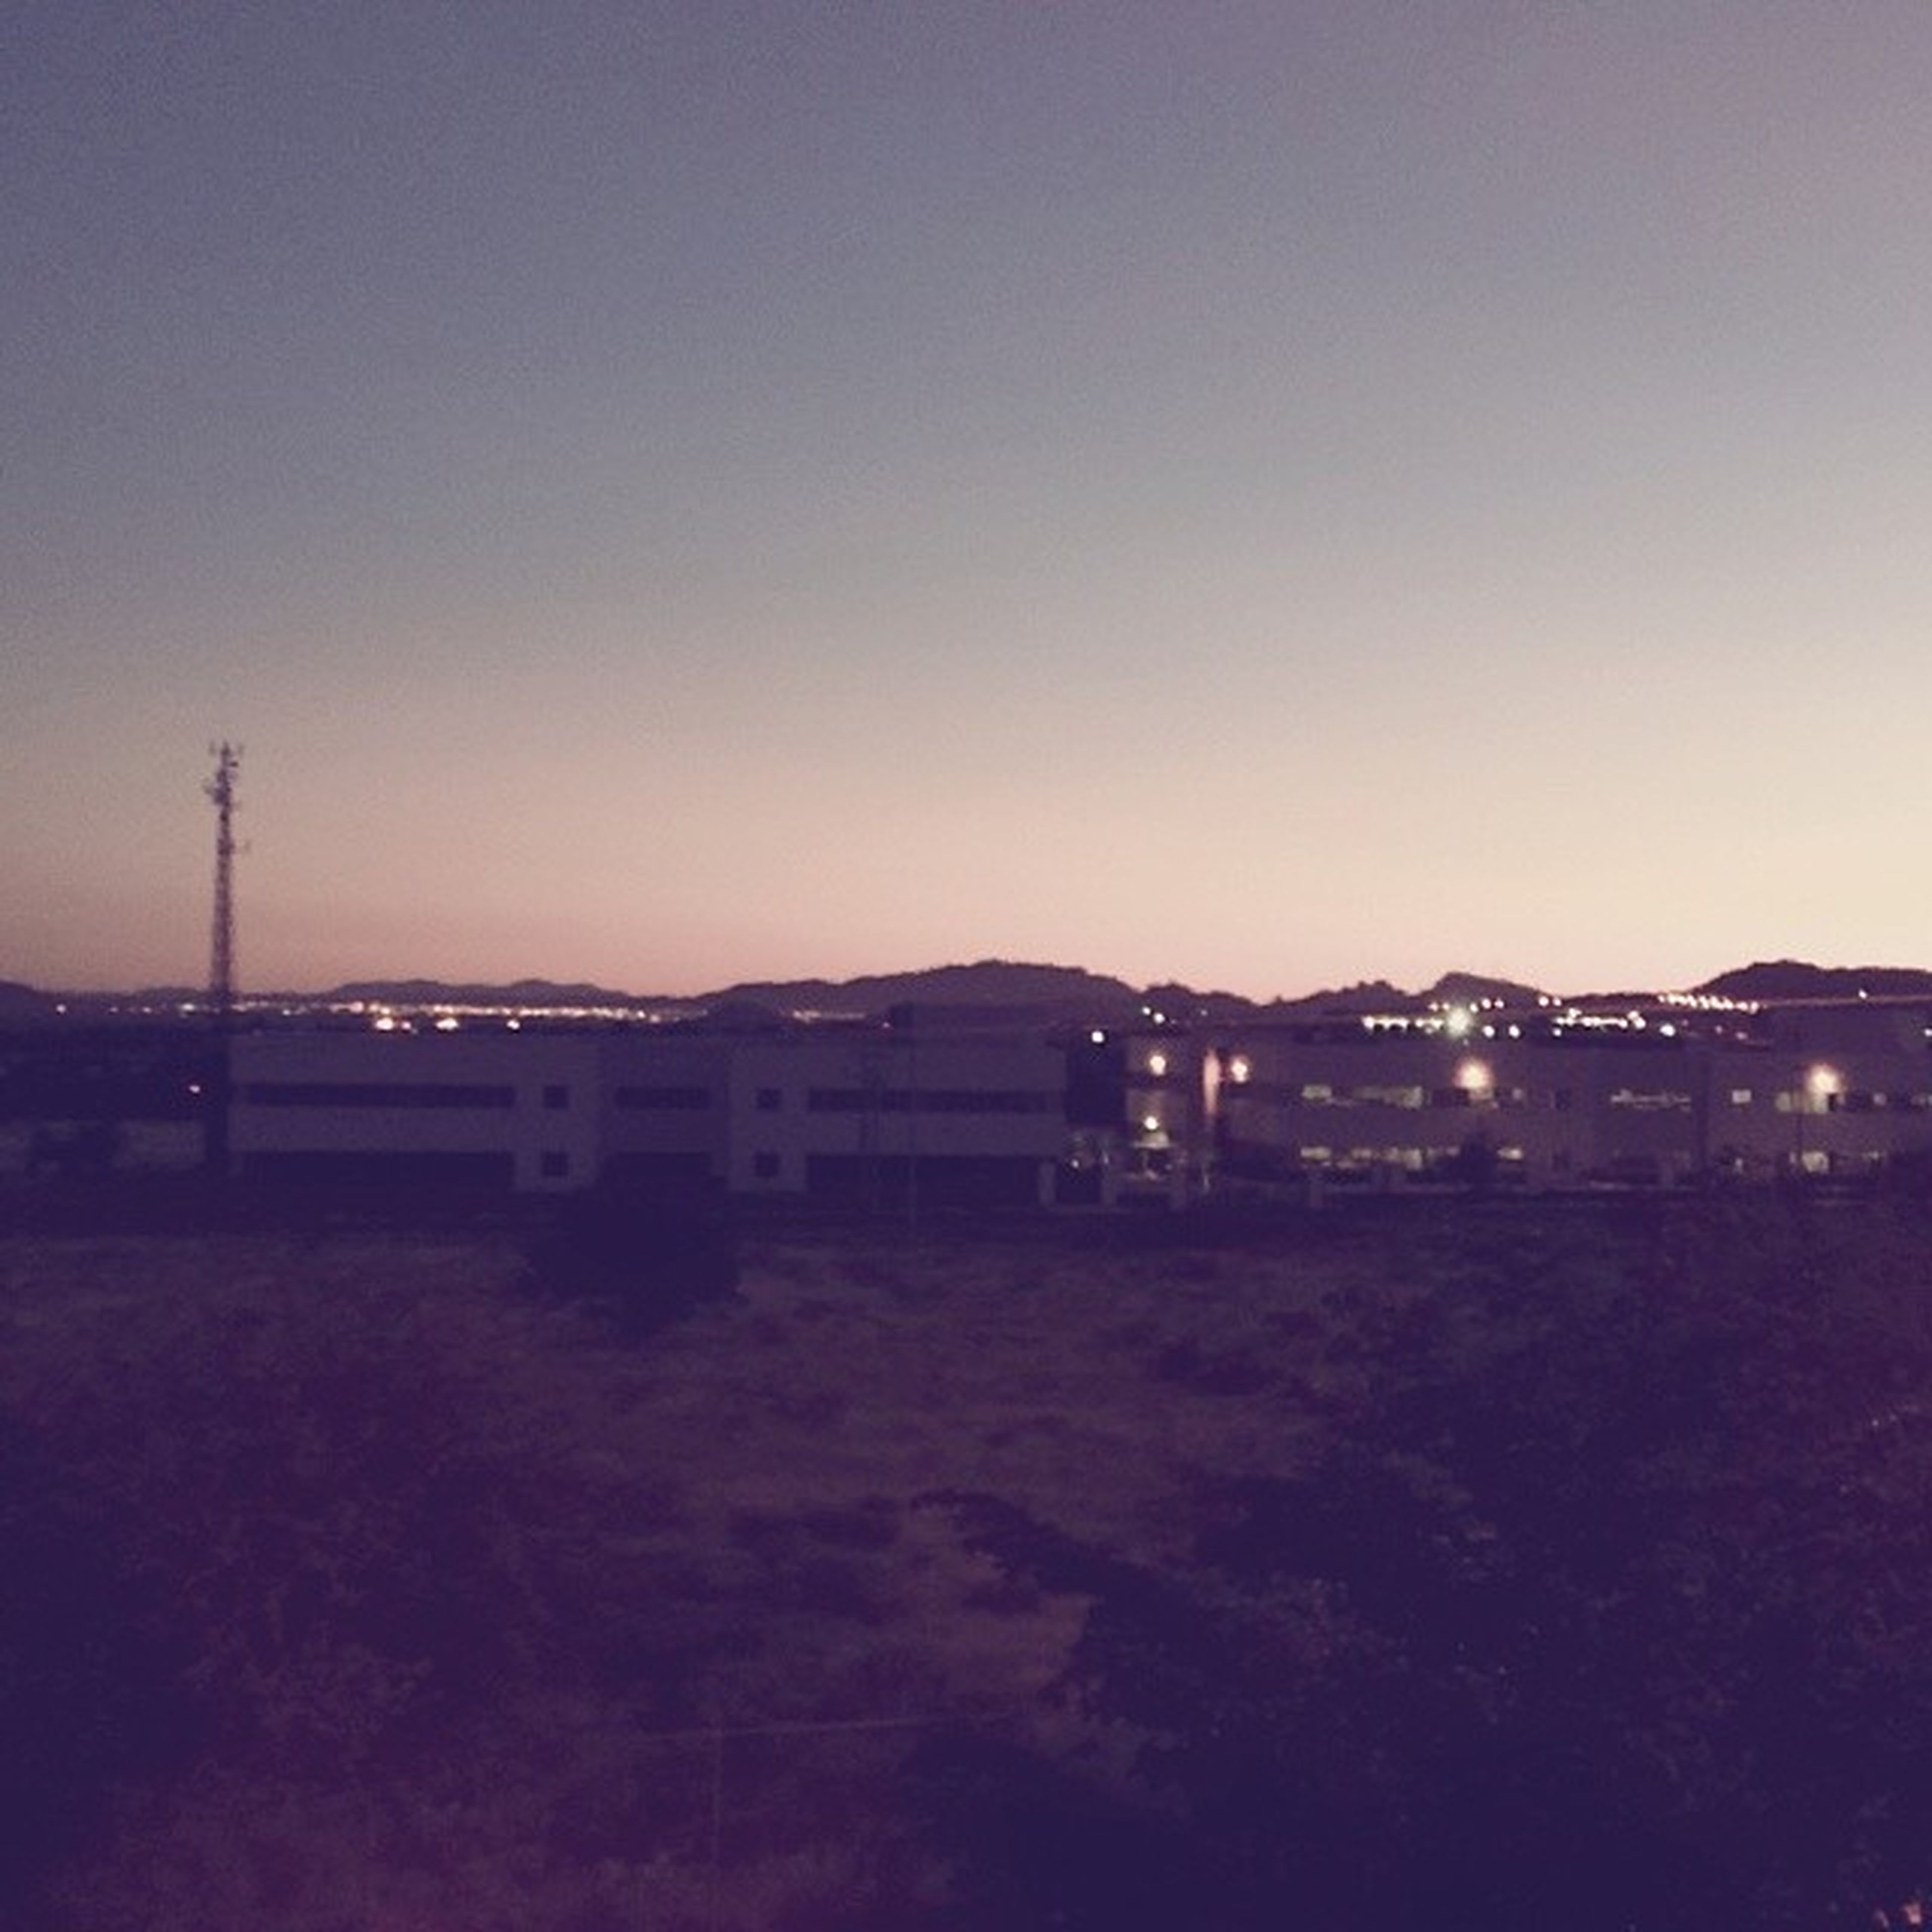 copy space, clear sky, building exterior, built structure, architecture, landscape, house, sunset, residential structure, illuminated, dusk, field, outdoors, sky, tranquility, nature, no people, residential building, night, tranquil scene